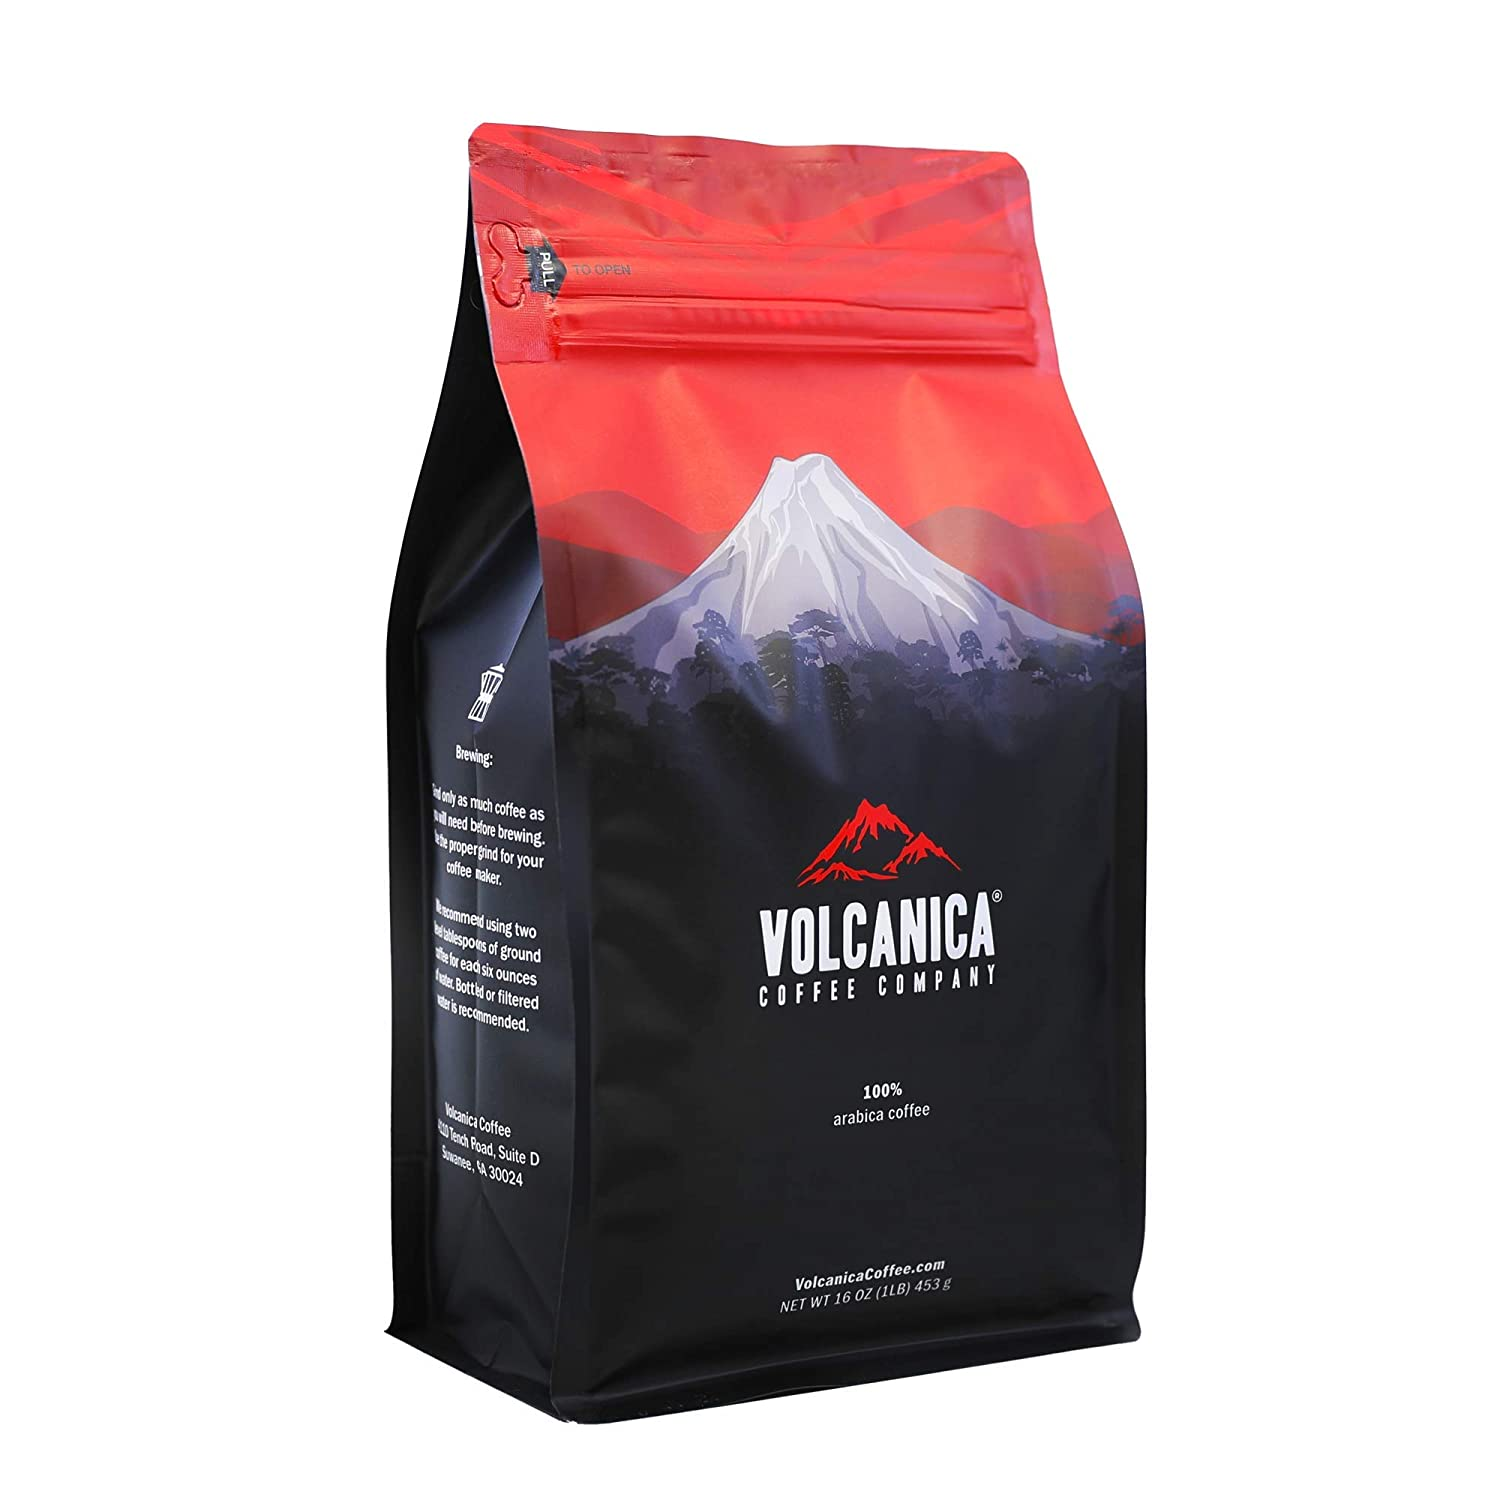 Cinnalicious Flavored Coffee Bean Lowest price challenge 16-ounce Manufacturer direct delivery Whole